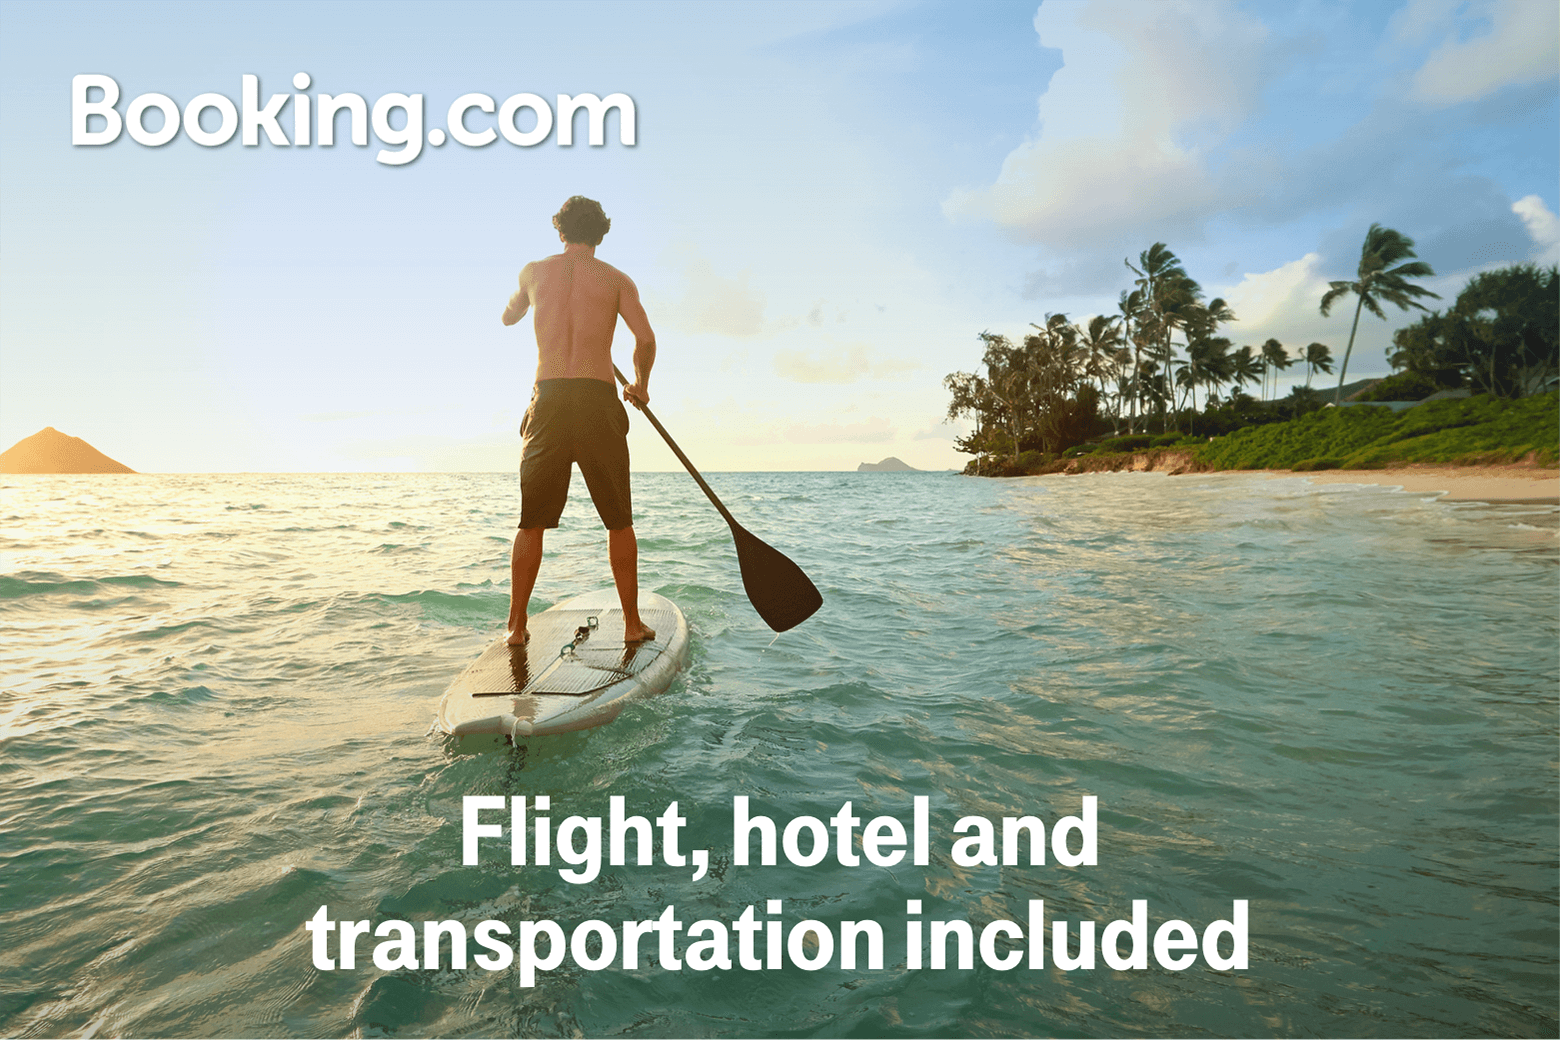 Booking.com. Flight, hotel, and transportation included.